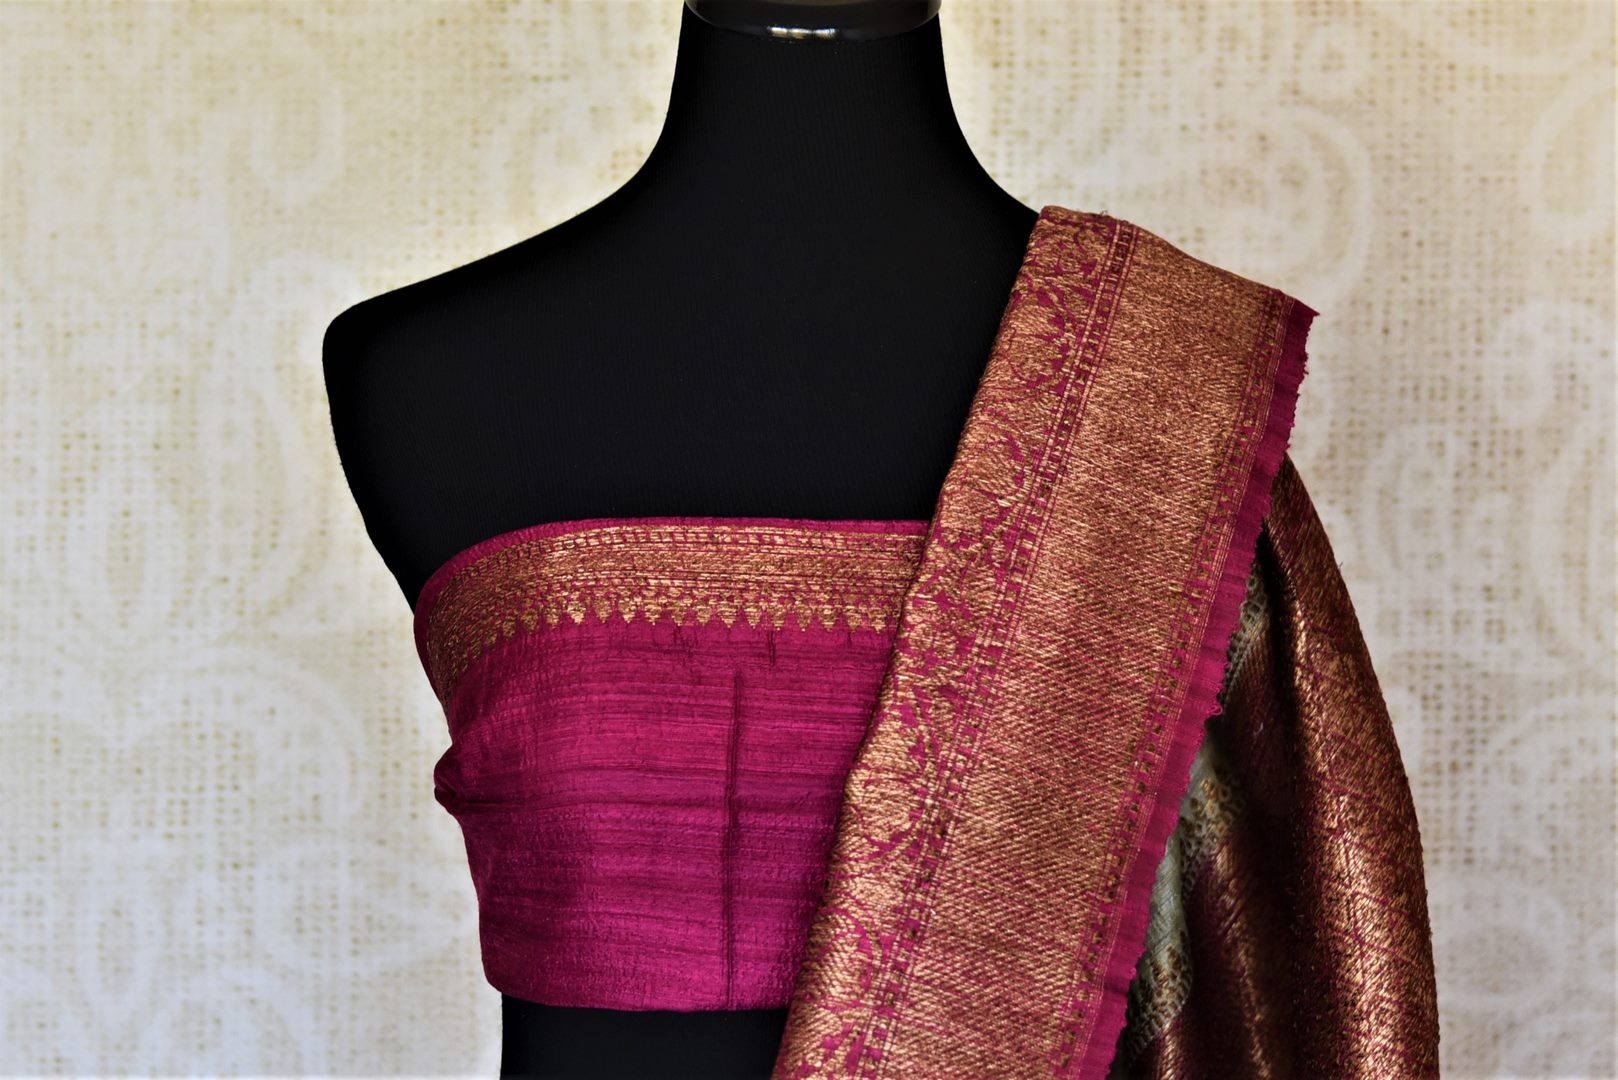 Shop mint green tussar Benarasi saree online in USA with magenta antique zari border. Keep your ethnic style updated with latest designer saris, handloom sarees, pure silk sarees from Pure Elegance Indian fashion store in USA.-blouse pallu